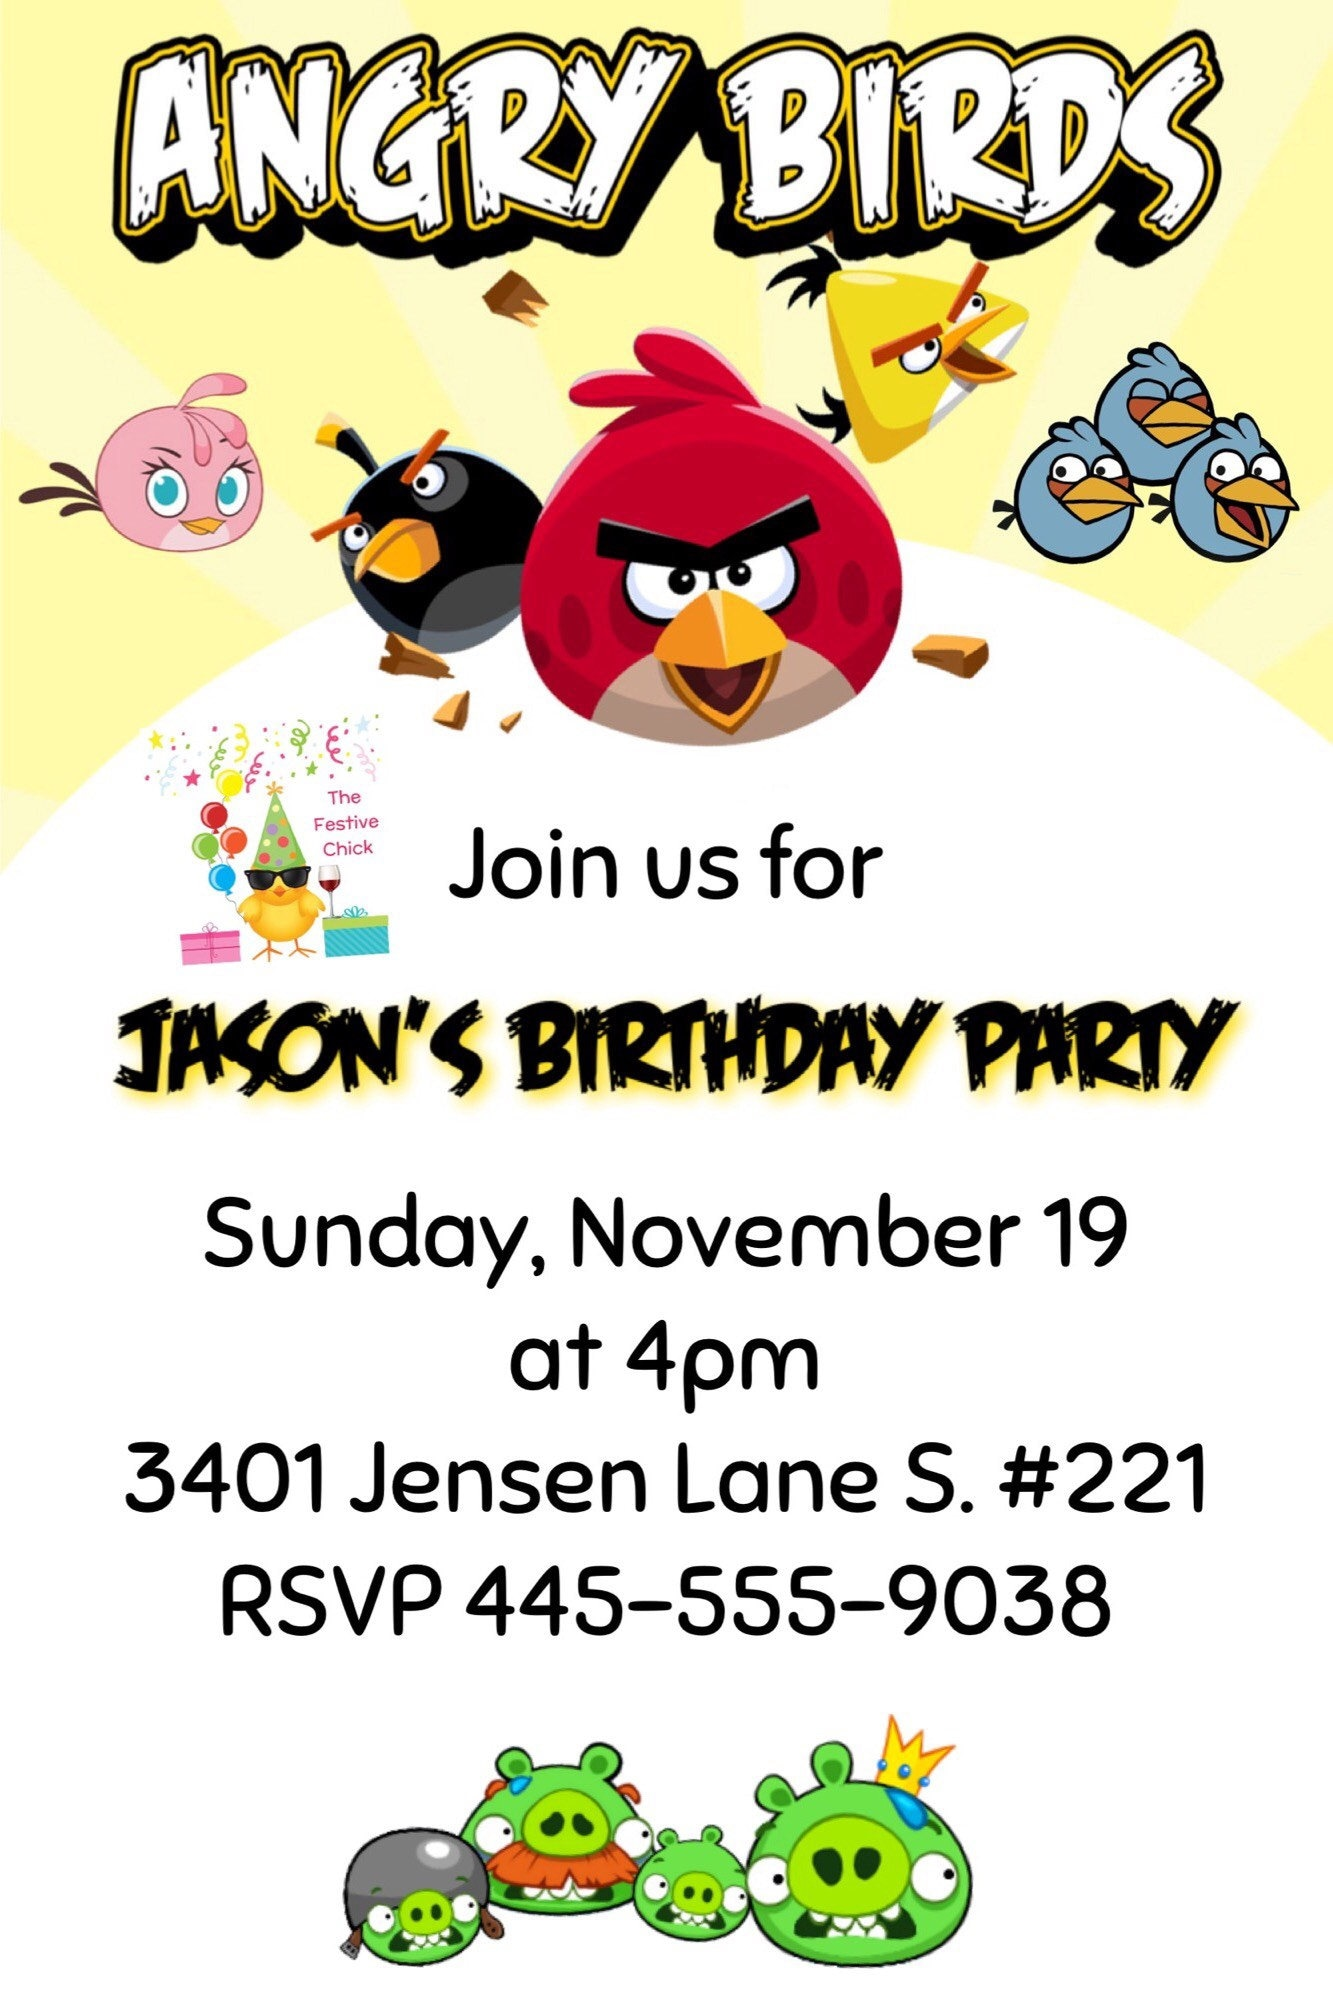 Angry Birds Invitations Angry Birds Angry Birds Party | Etsy